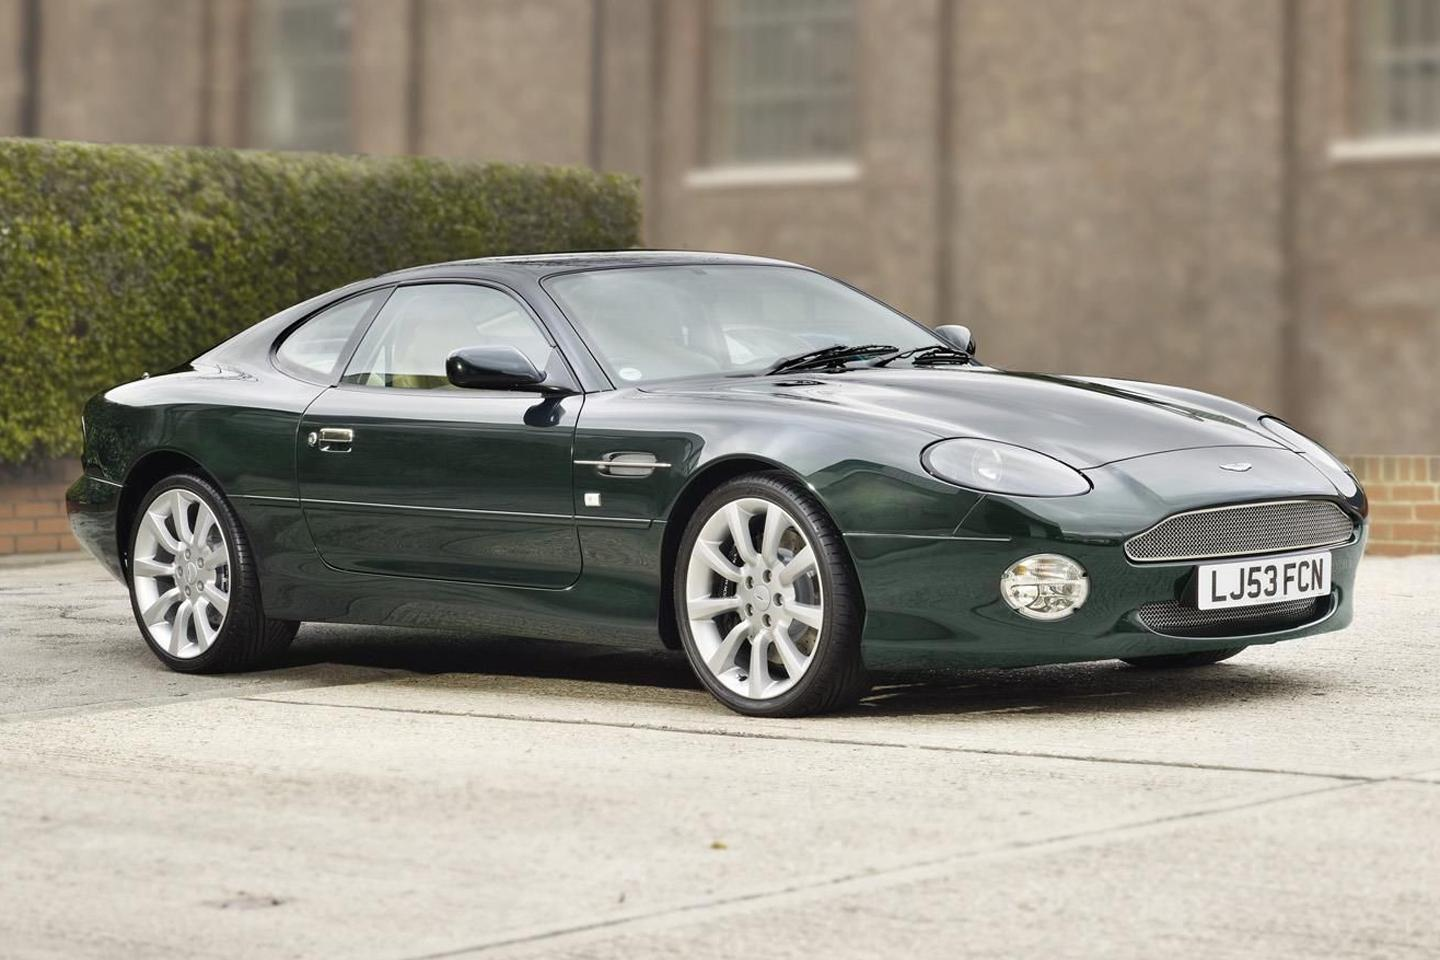 Delivery Mile Aston Martin Db7 For Sale Pistonheads Uk